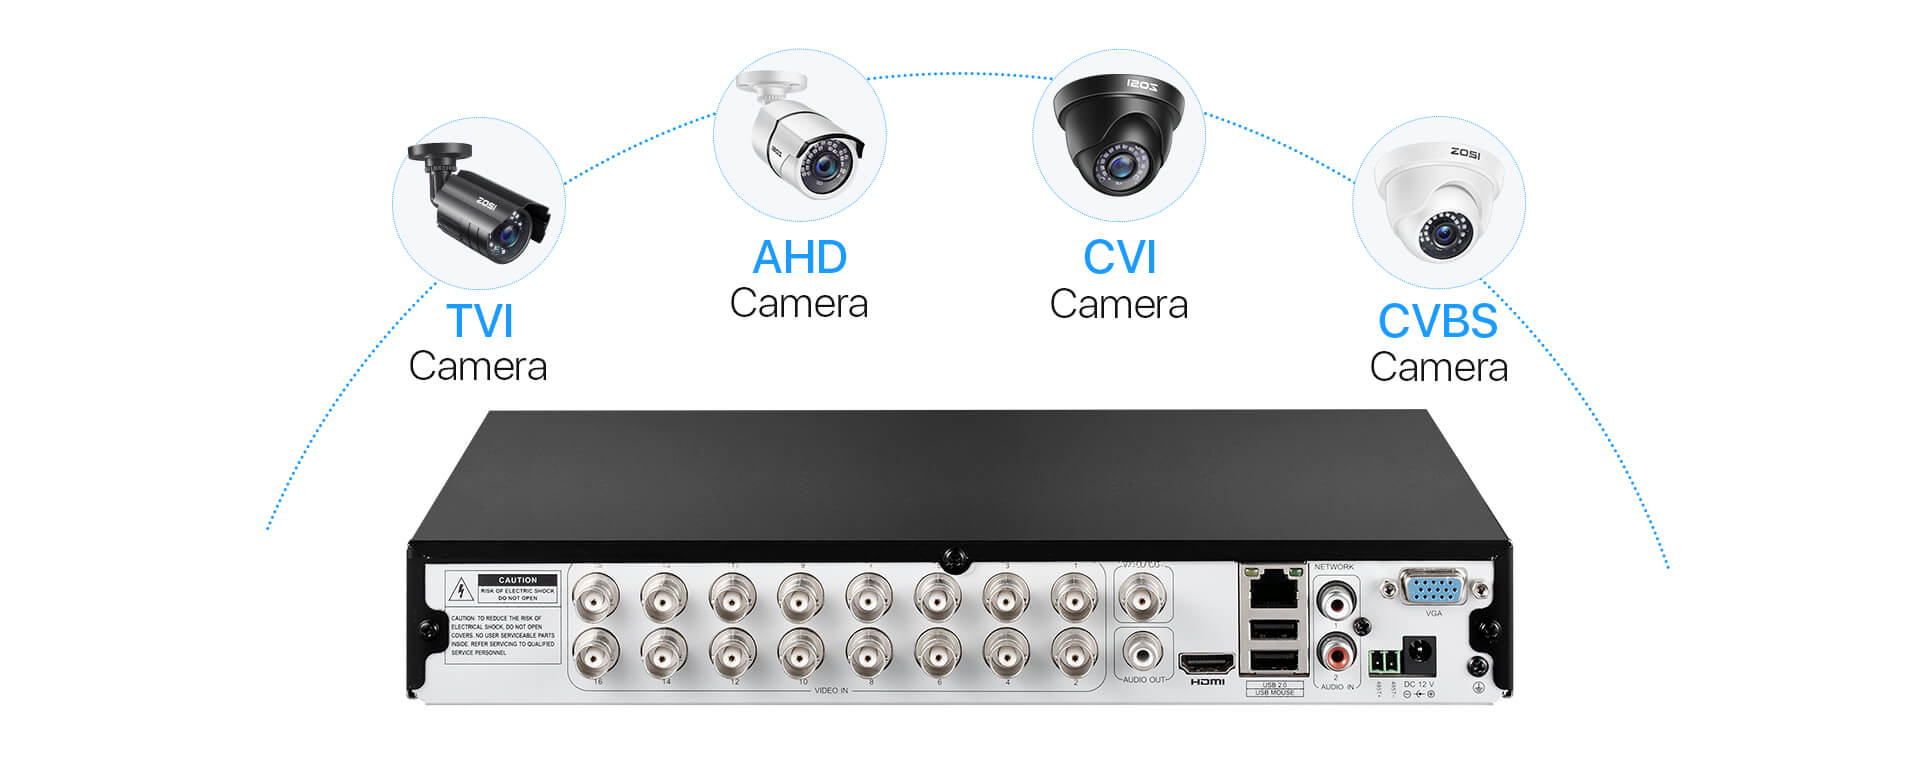 Zosi 16-channel 4-in-1 DVR